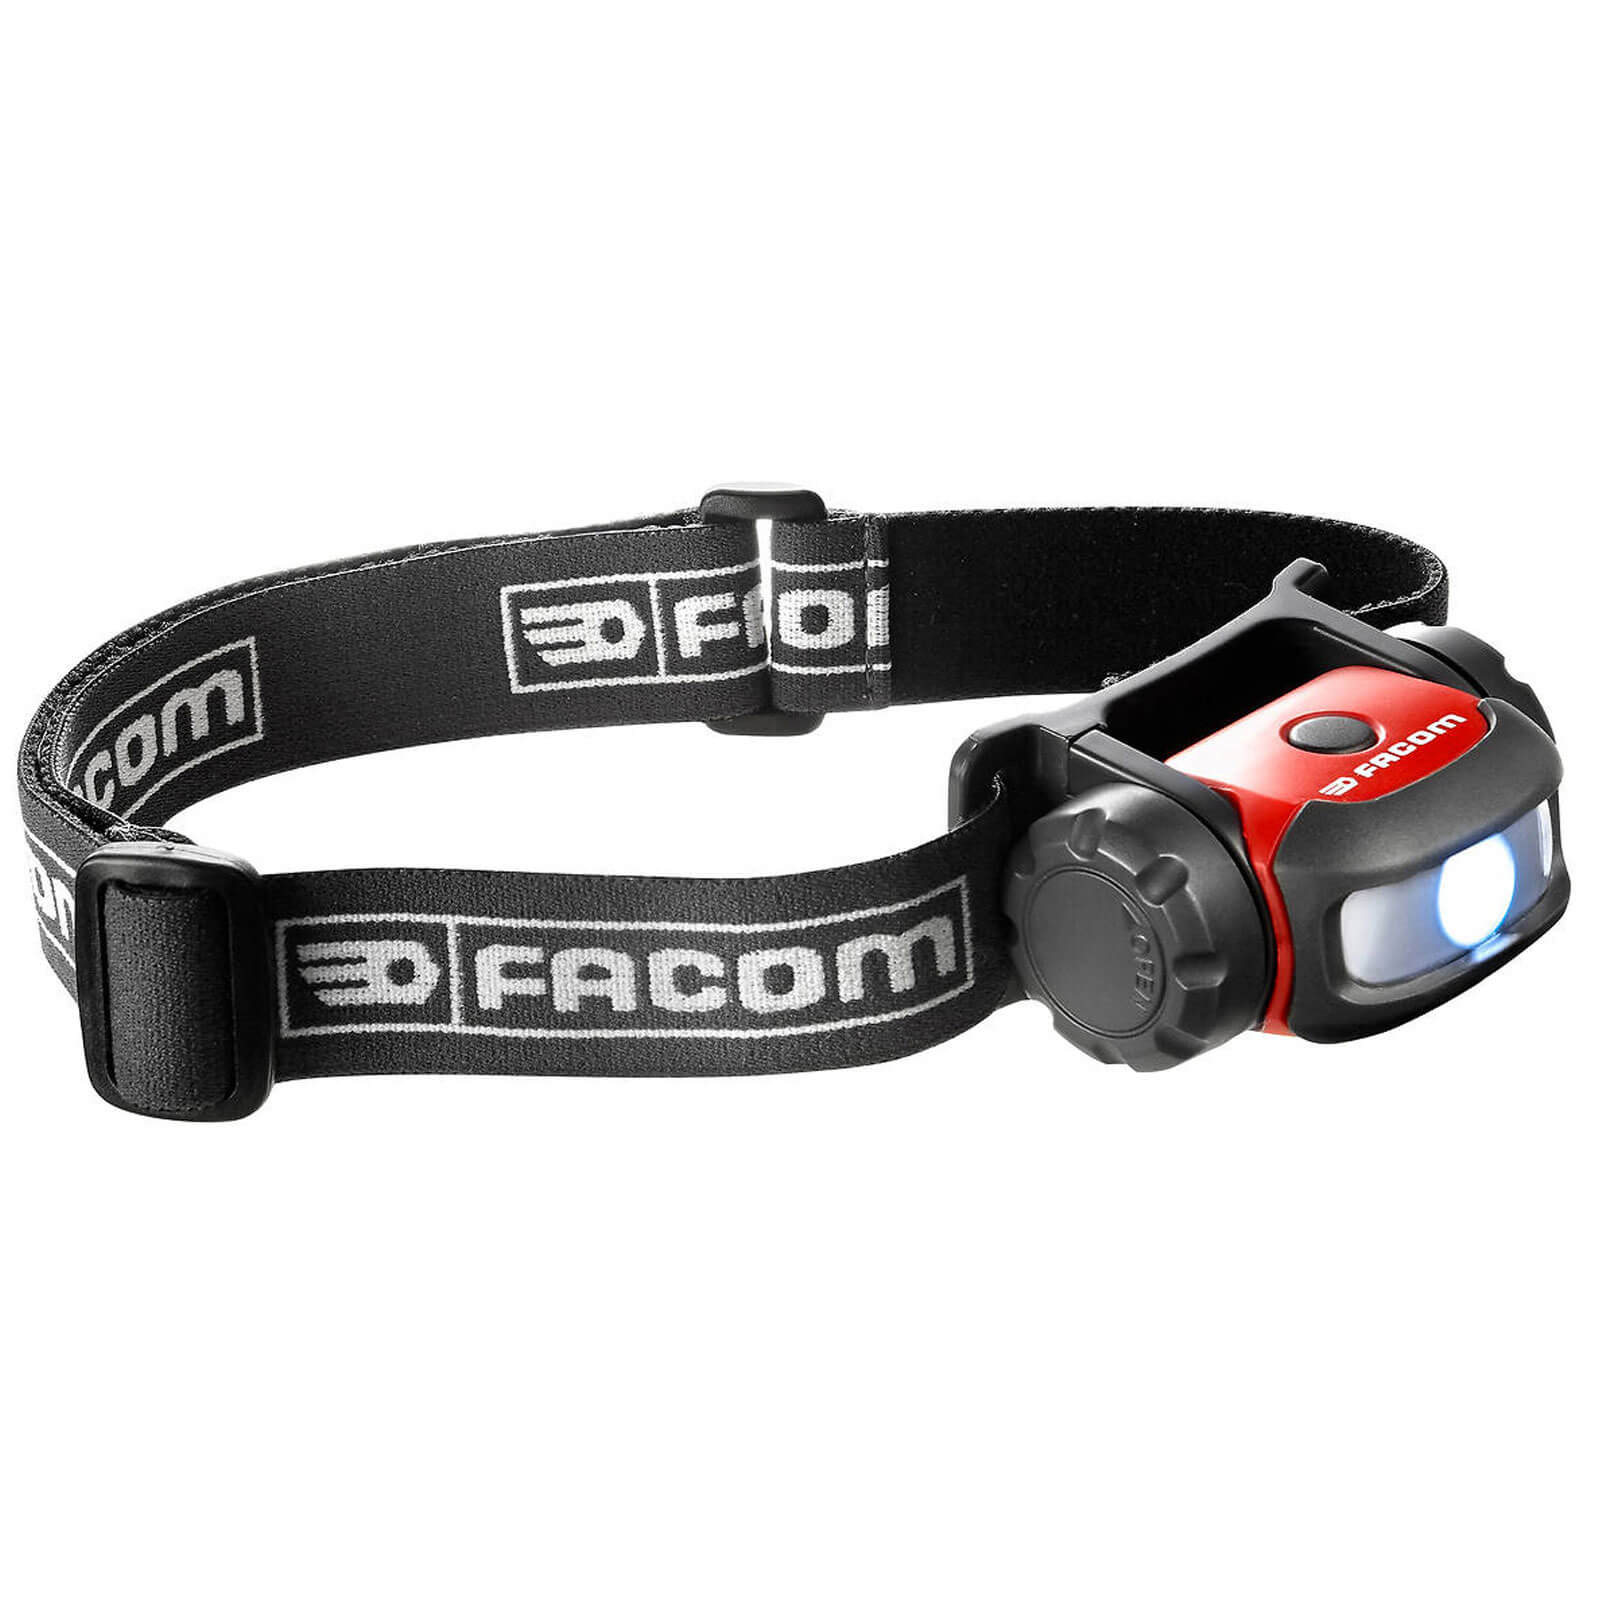 Image of Facom LED Head Torch 20 - 45 Lumens